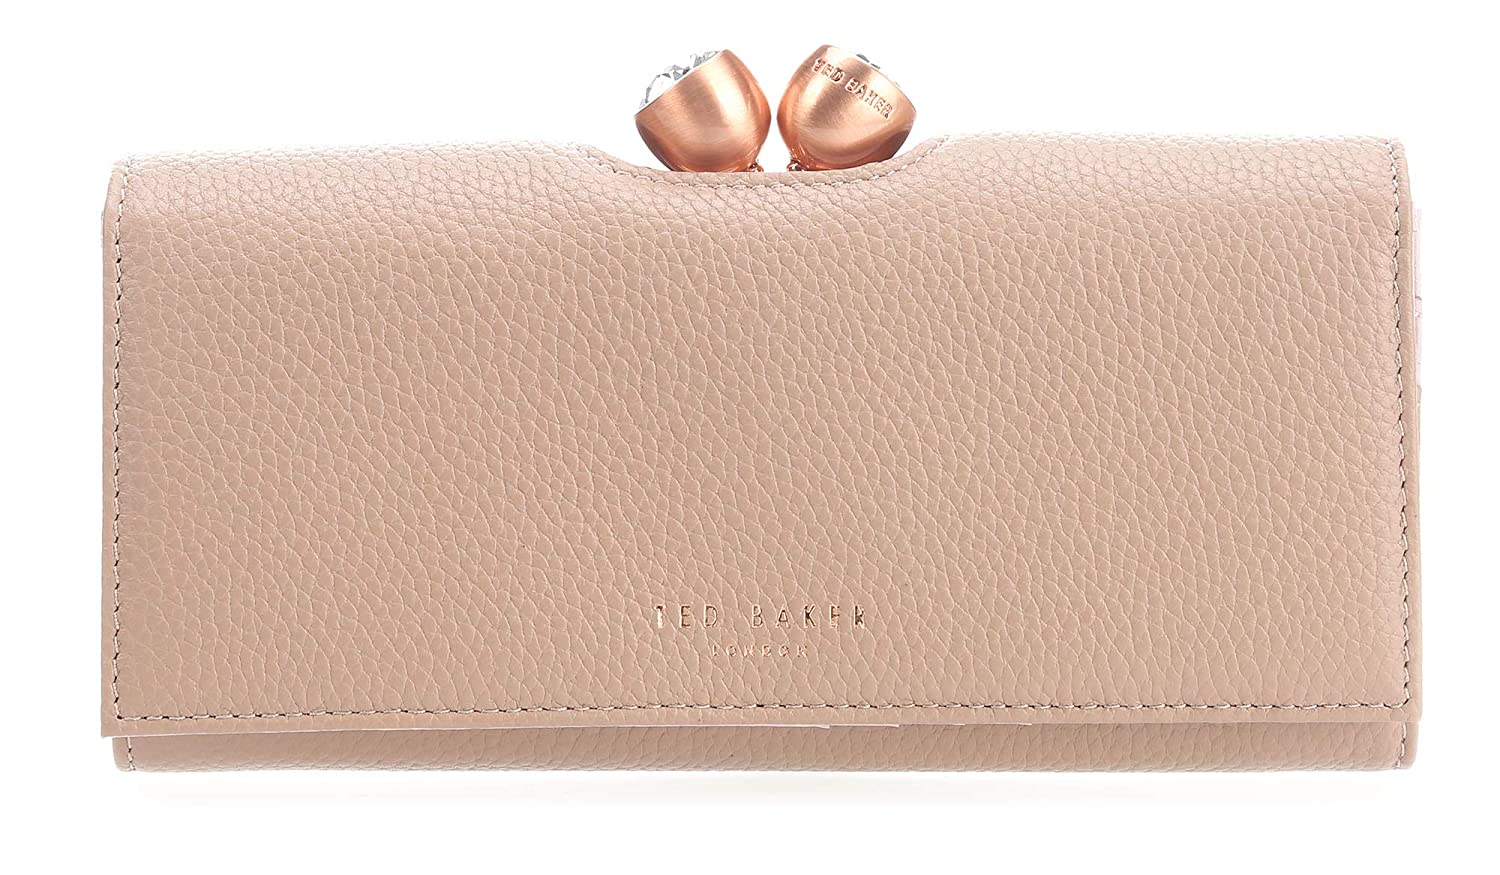 dd8000952c Ted Baker Muscovy Wallet Taupe: Amazon.co.uk: Luggage